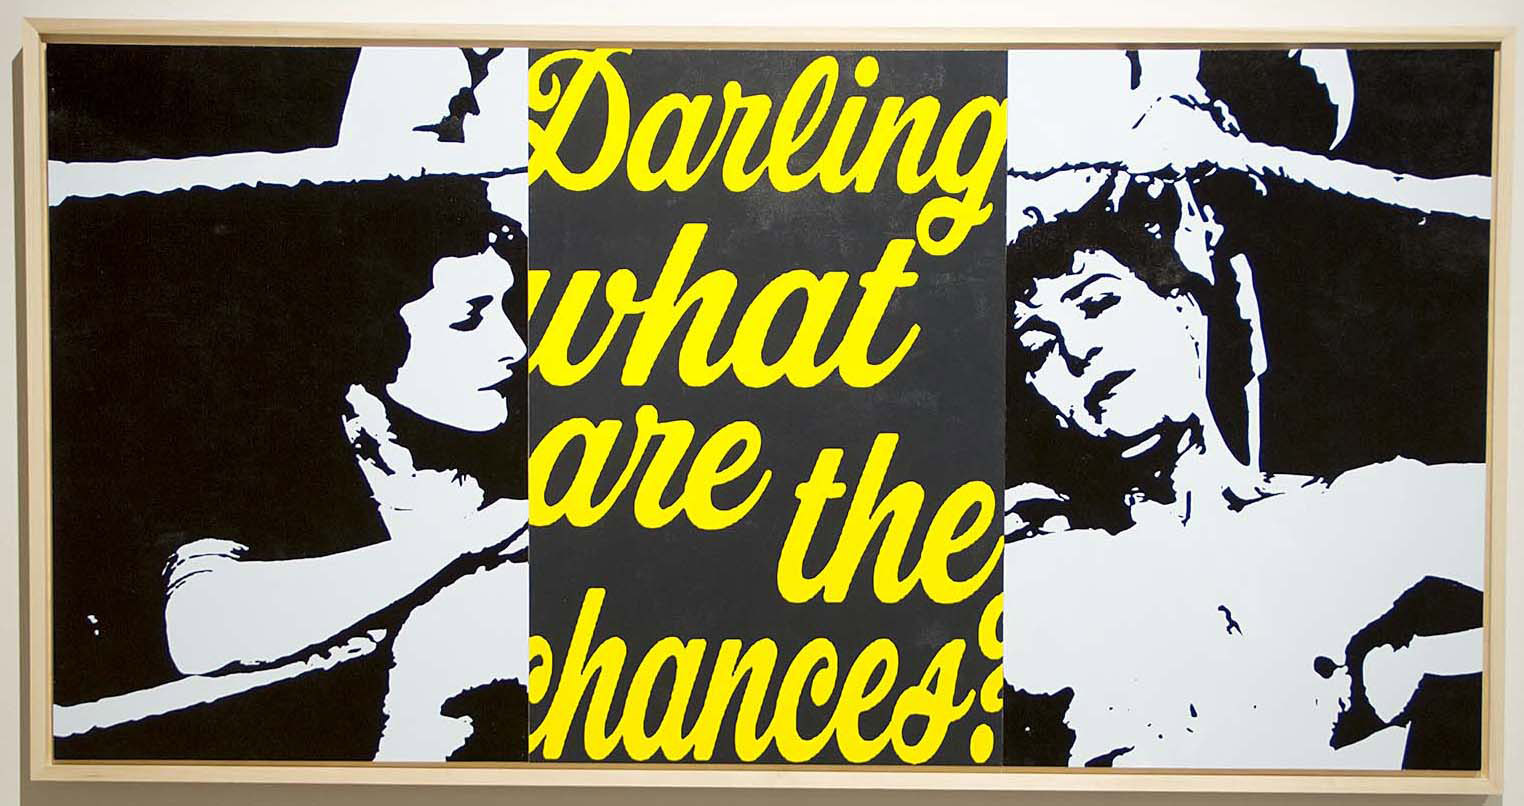 """The Give And Take """"Darling what are the chances?"""" - a text art installation at the Joseph Gross Gallery"""